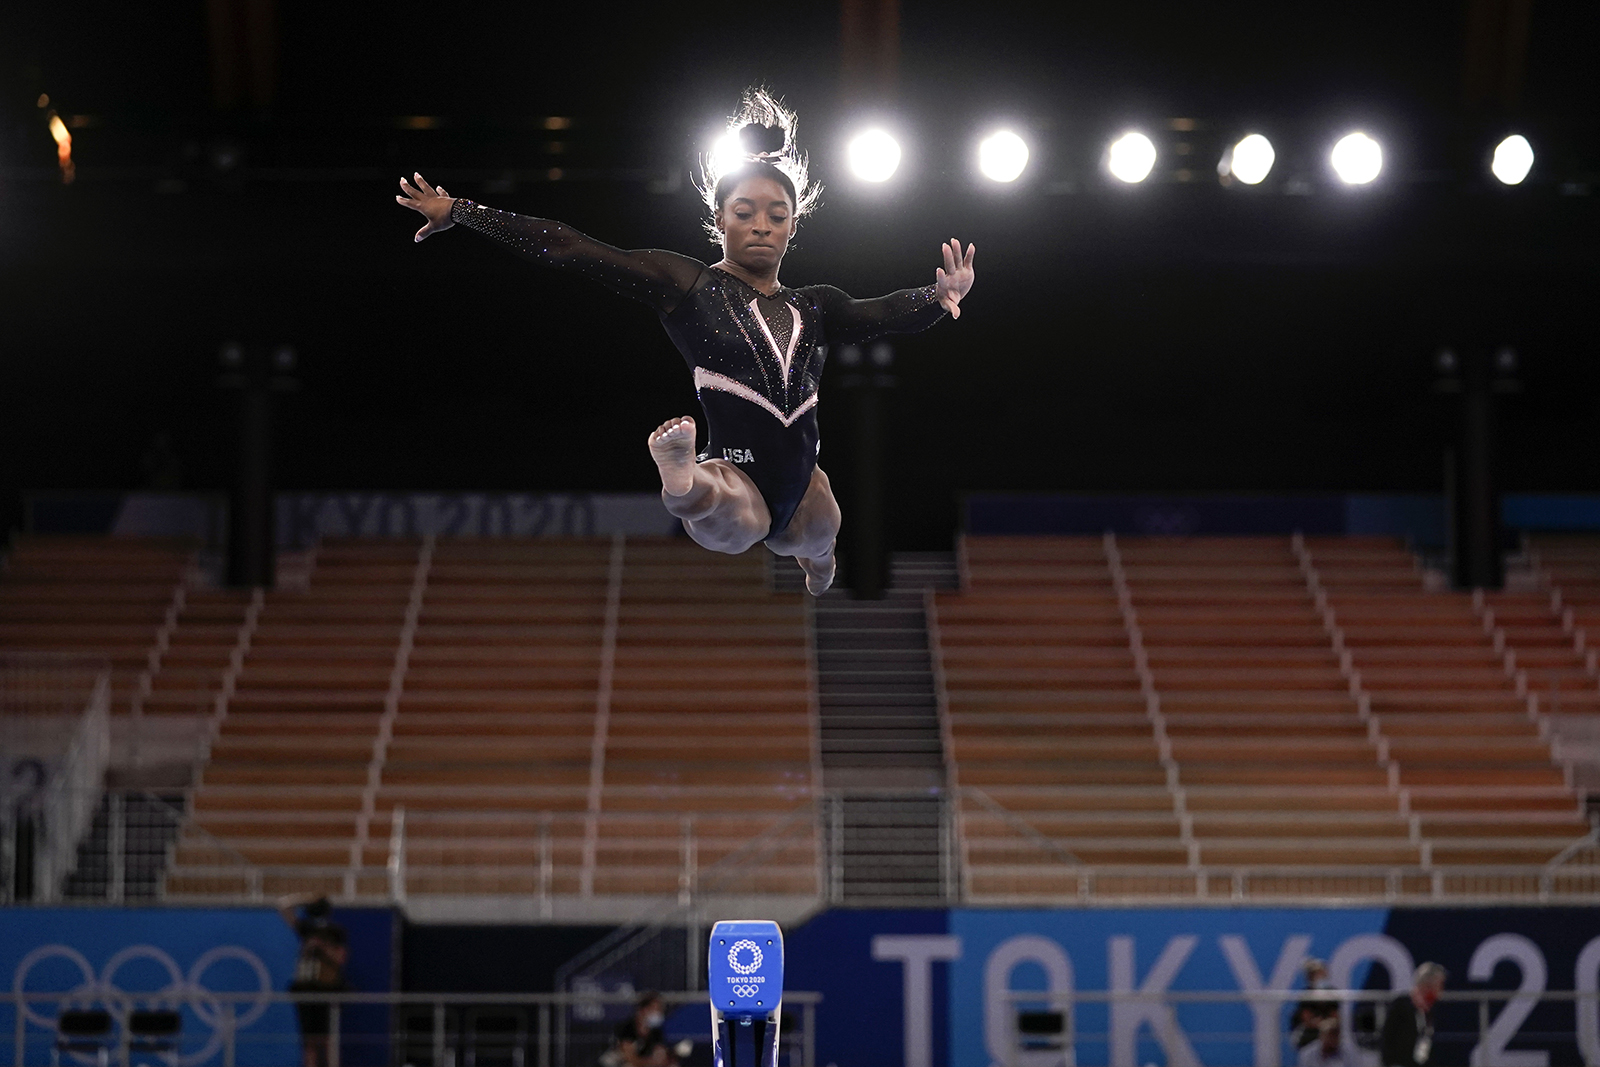 Simone Biles trains on the beam during a practice session in Tokyo, on July 22, 2021.